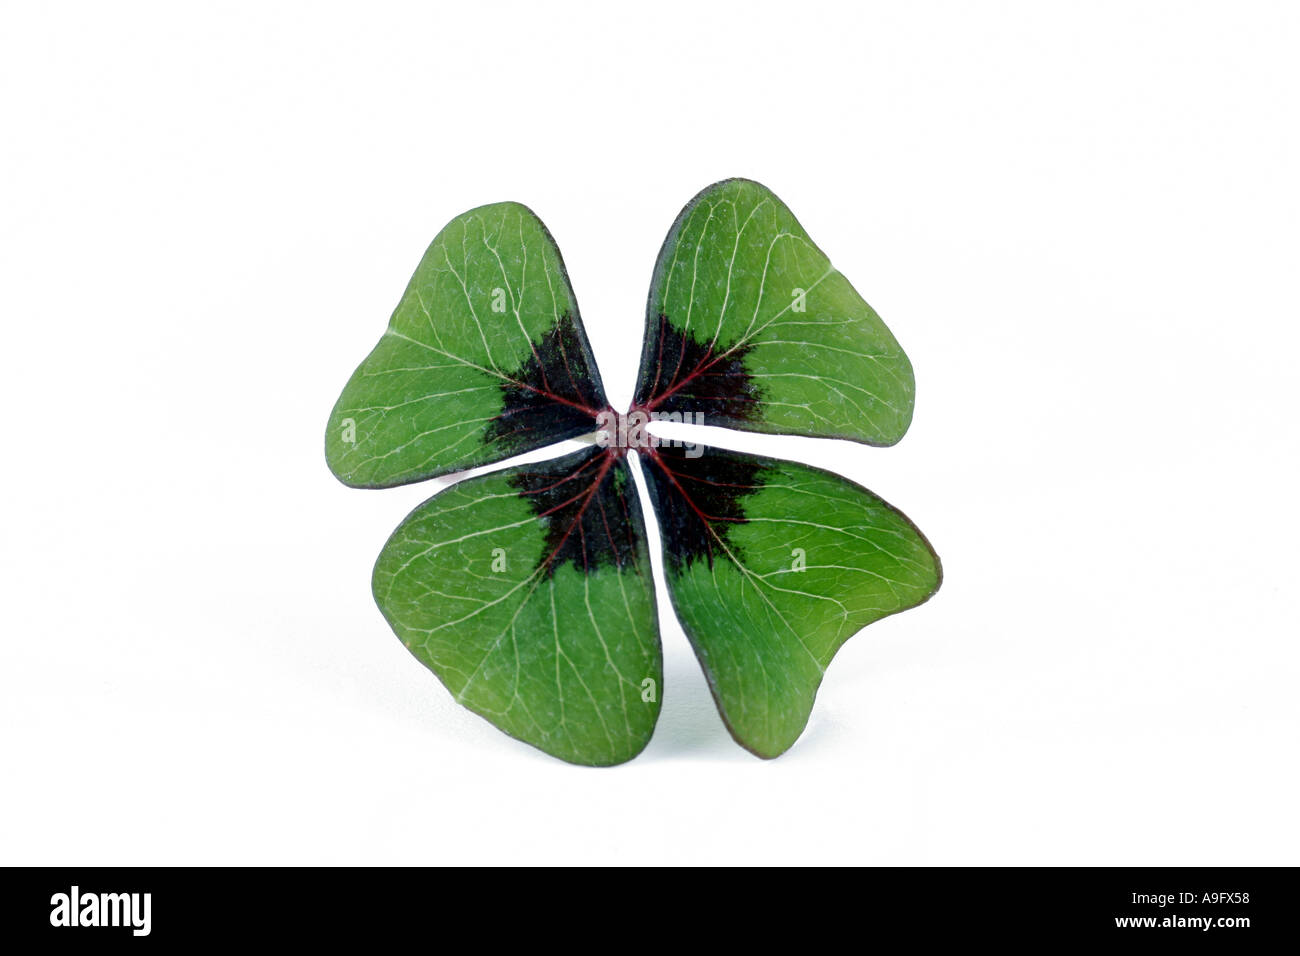 four-leafed clover (Oxalis tetraphylla), four-leafed clover Stock Photo